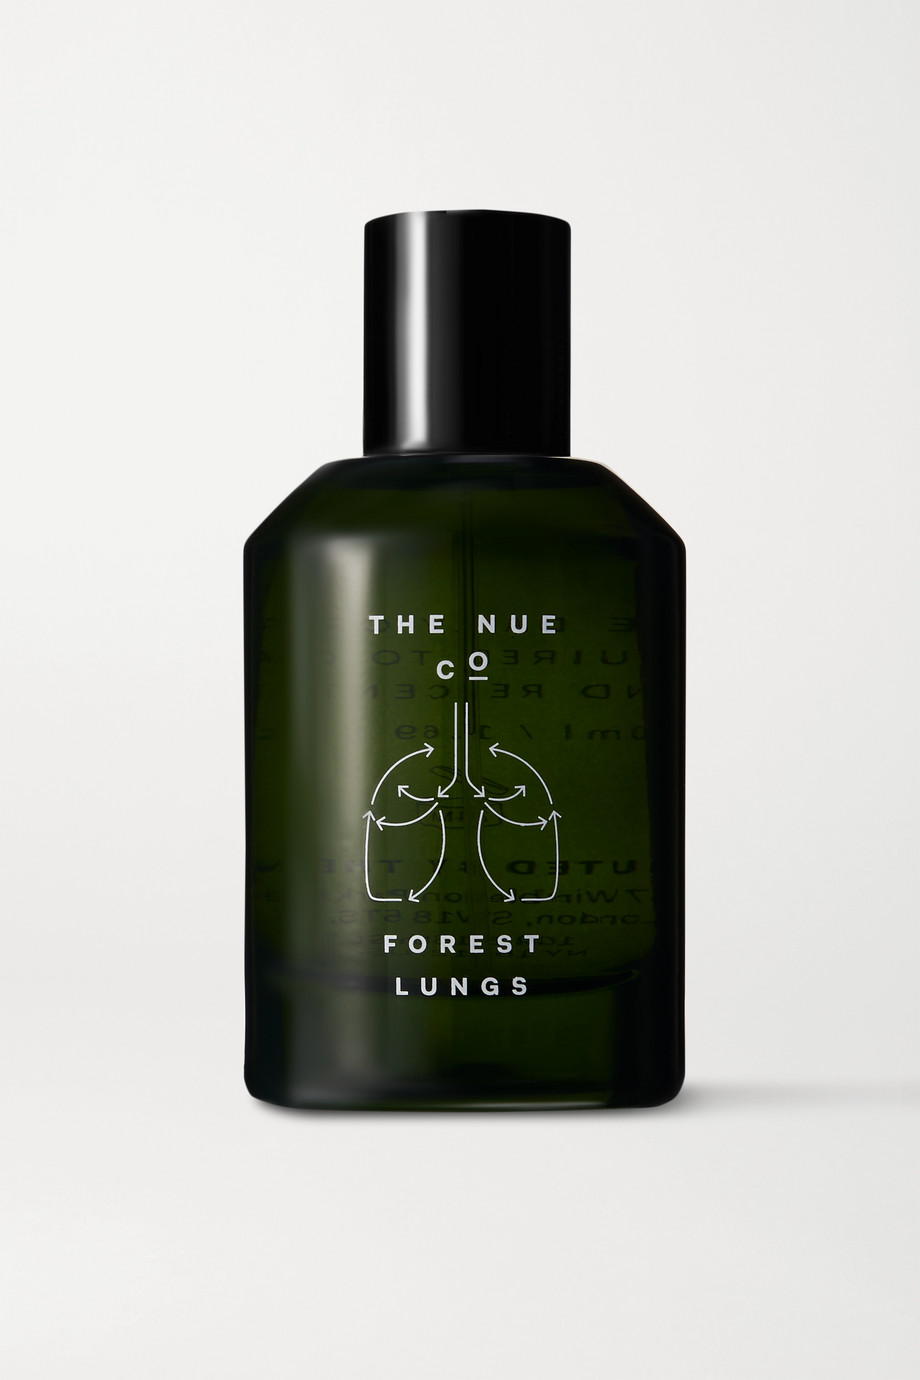 The Nue Co. Forest Lungs, 50 ml – Eau de Parfum